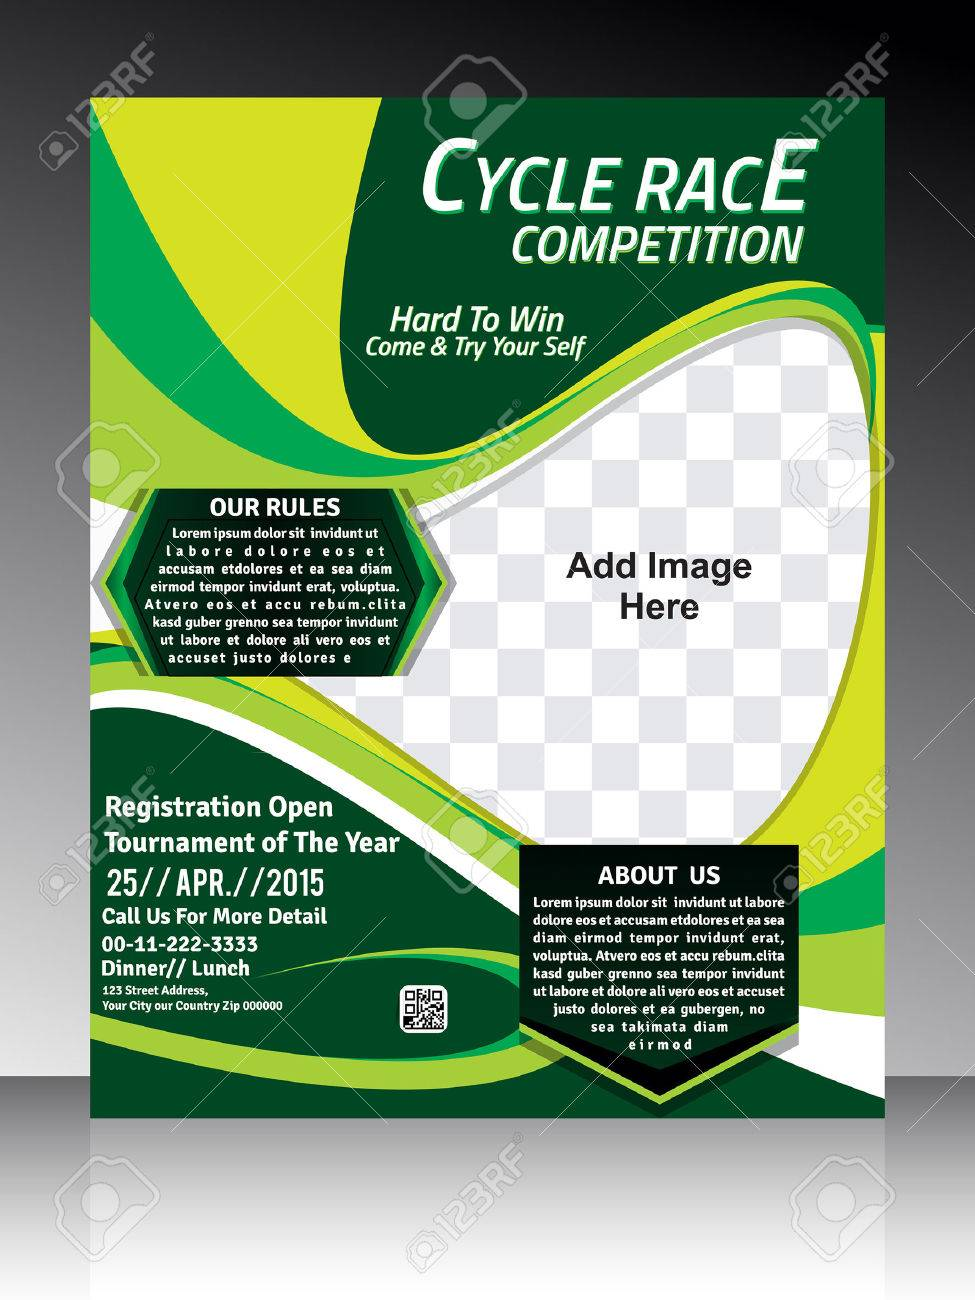 Cycle Race Flyer Template Design Vector Illustration Royalty Free – Lunch Flyer Template